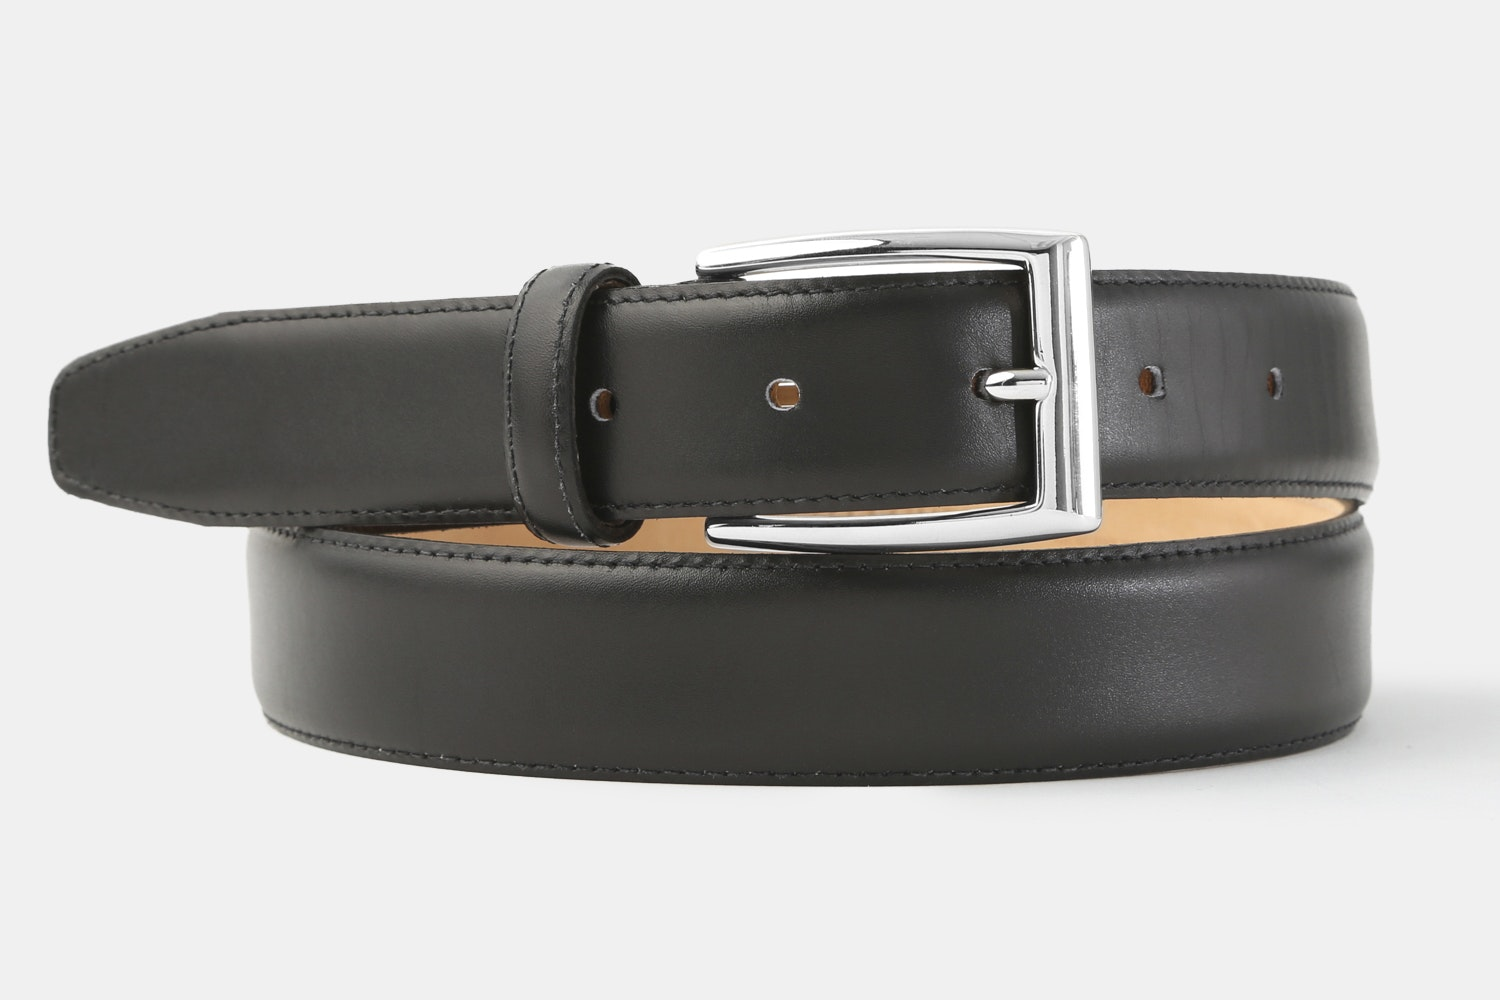 Massdrop x The British Belt Co. Dress Belt